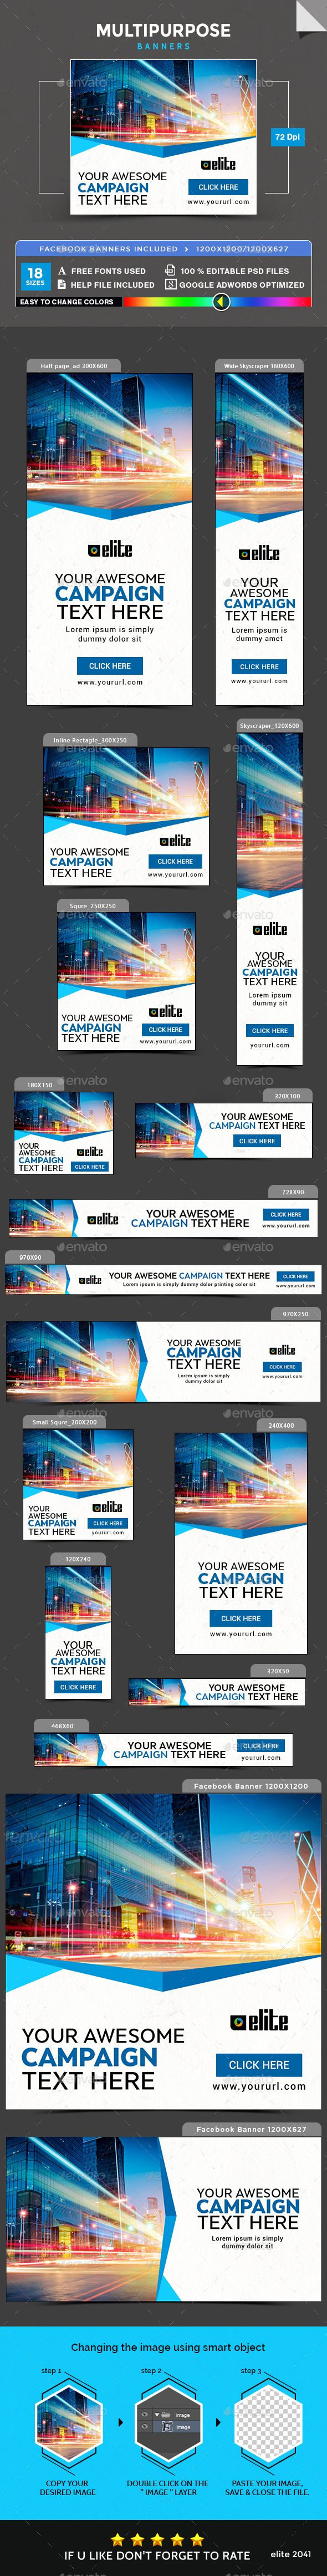 Multipurpose Banners Template PSD #ads #web